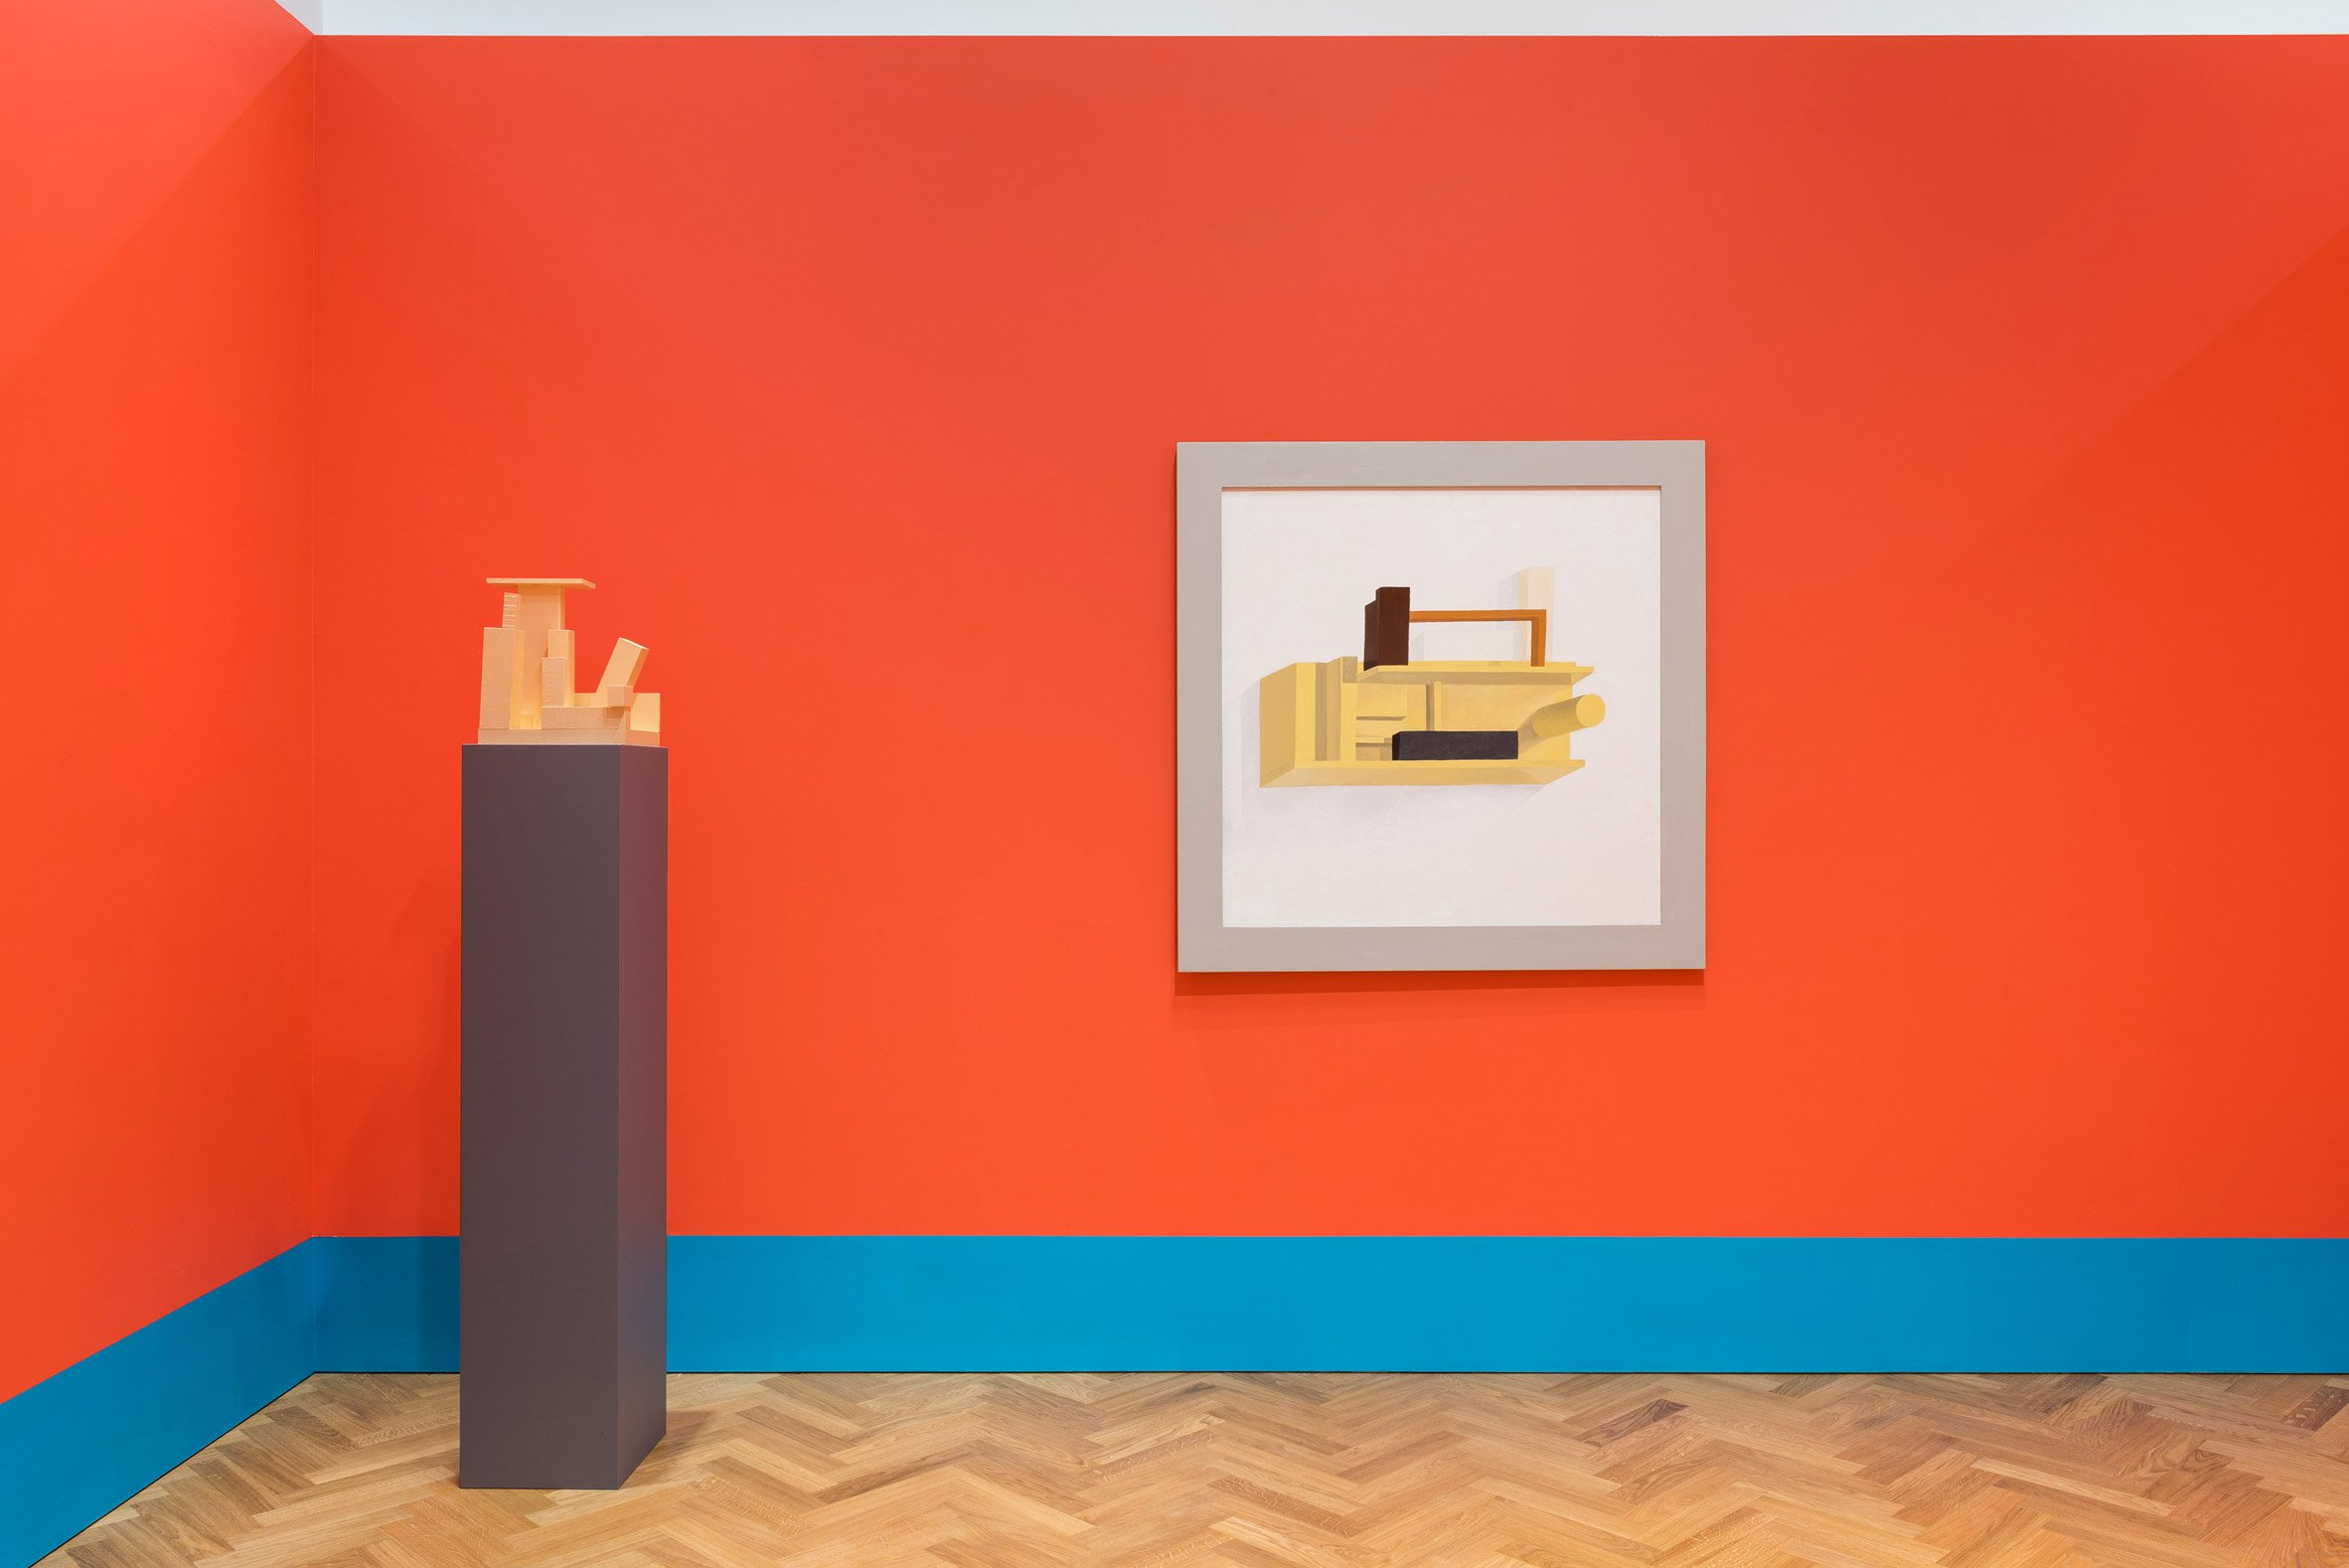 from-time-to-time-exhibition-nathalie-du-pasquier-design_dezeen_2364_col_23-1.jpg